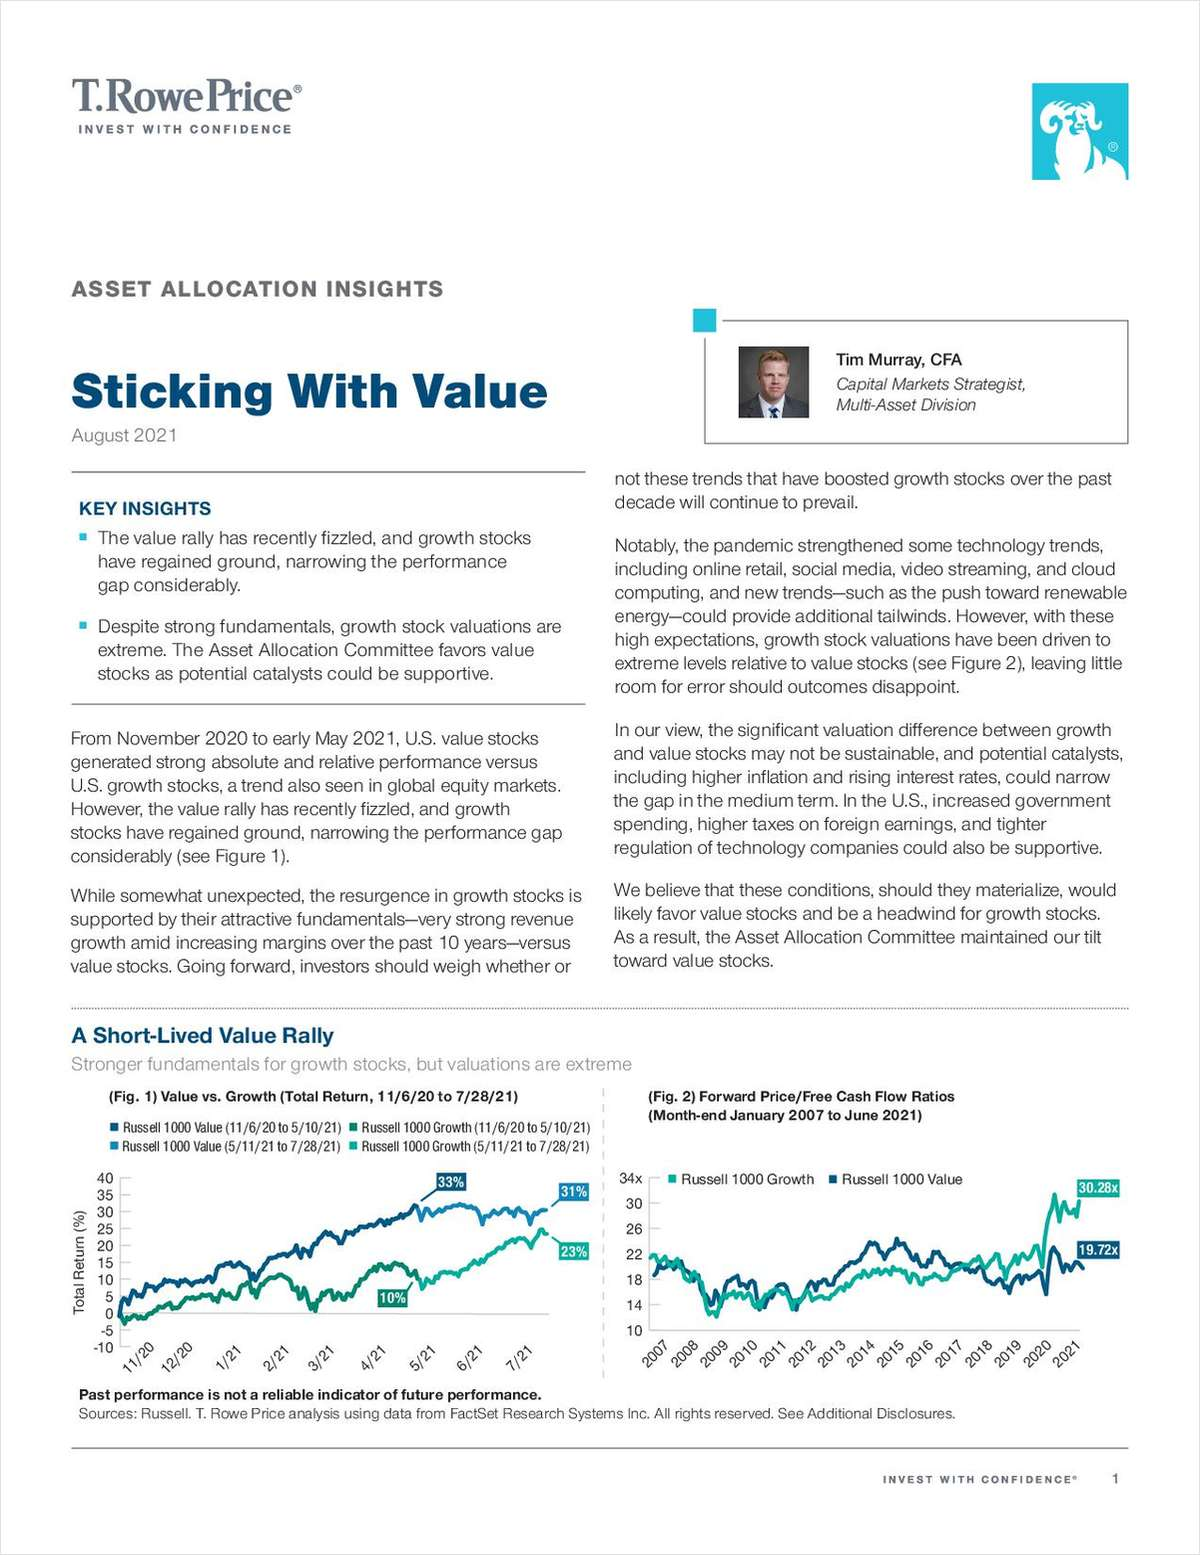 Asset Allocation Insights: Sticking With Value